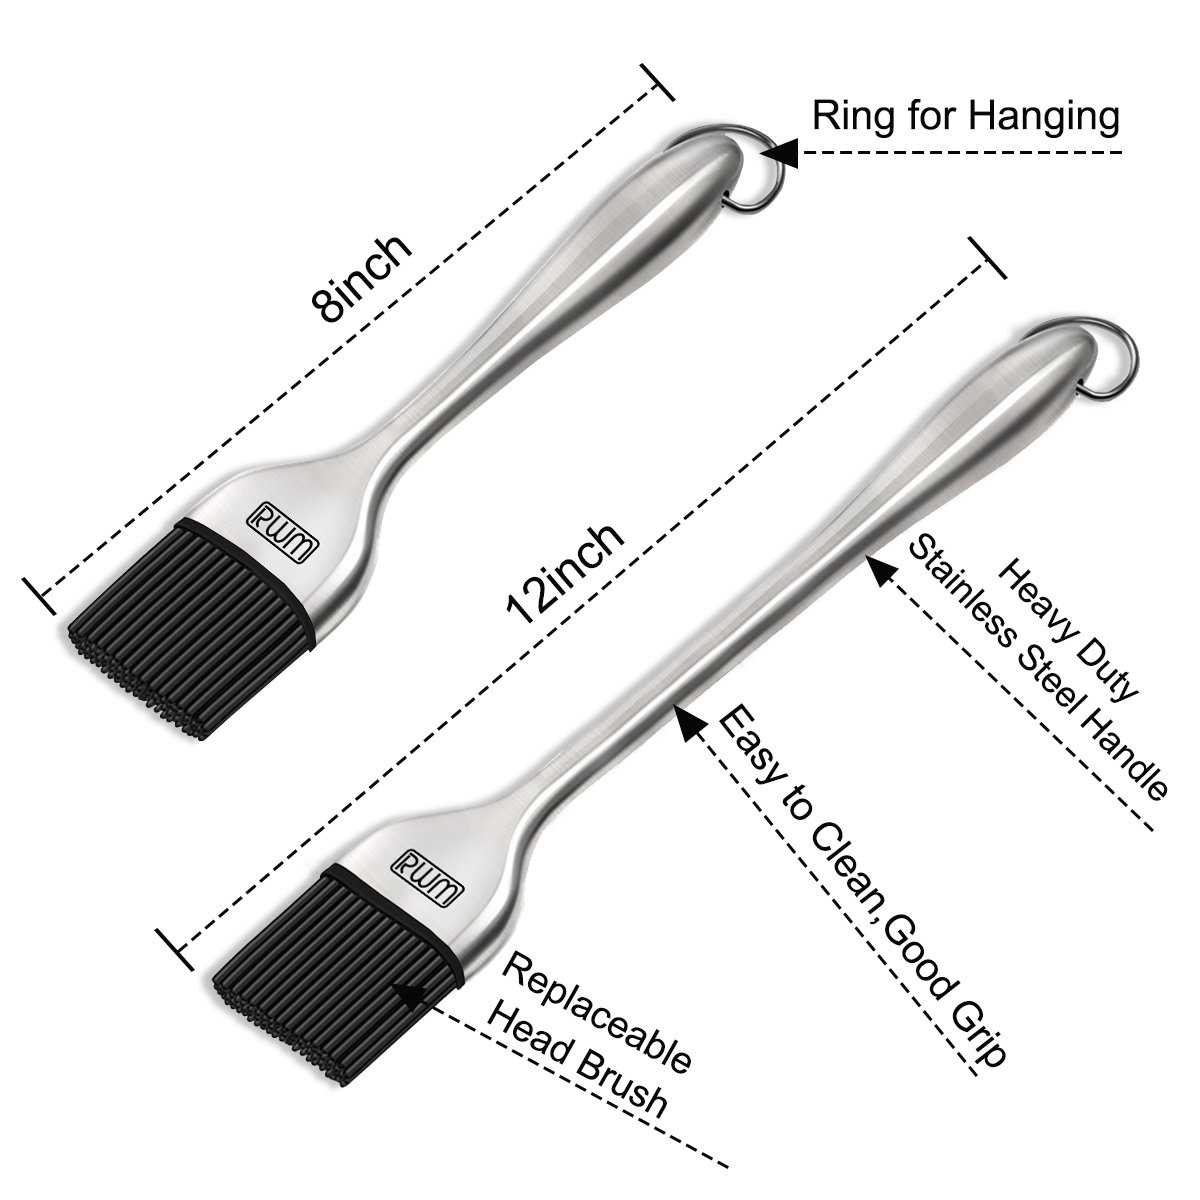 Obliging Black Head White Head Remover Tool Stainless Steel At Any Cost Skin Care